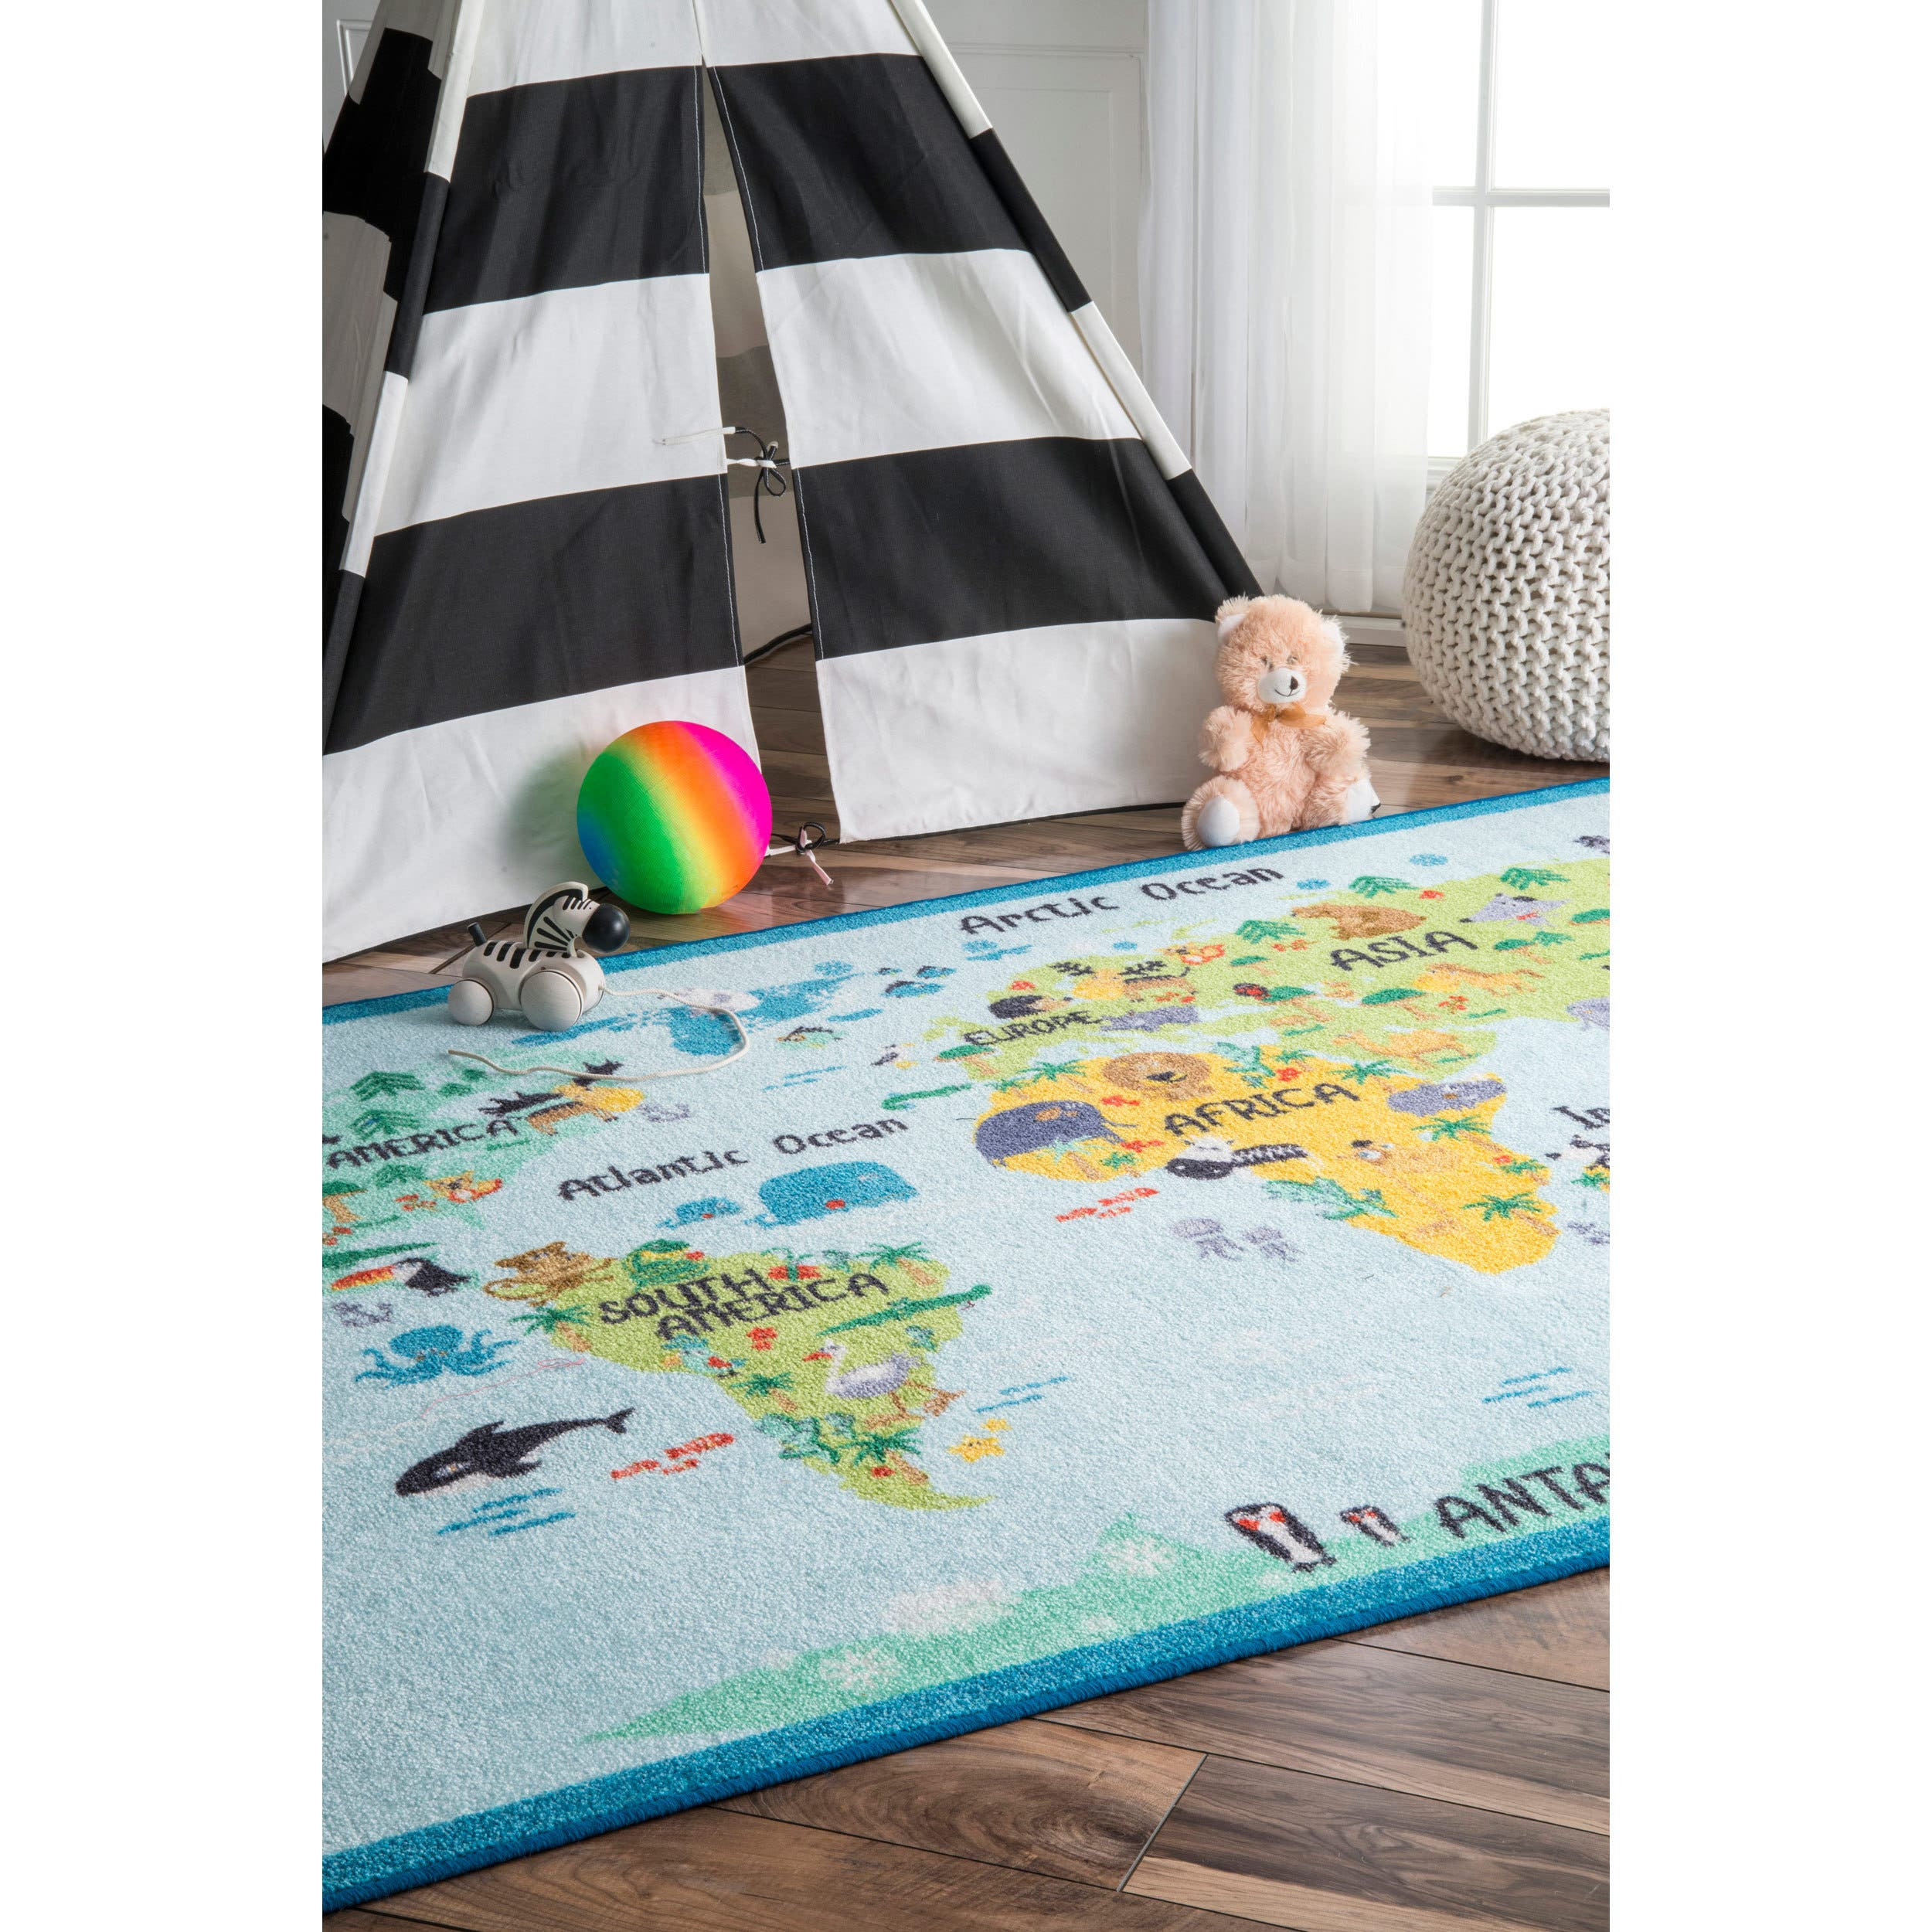 World Map Rug Costco: Buy 3x5 - 4x6 Rugs Online At Overstock.com